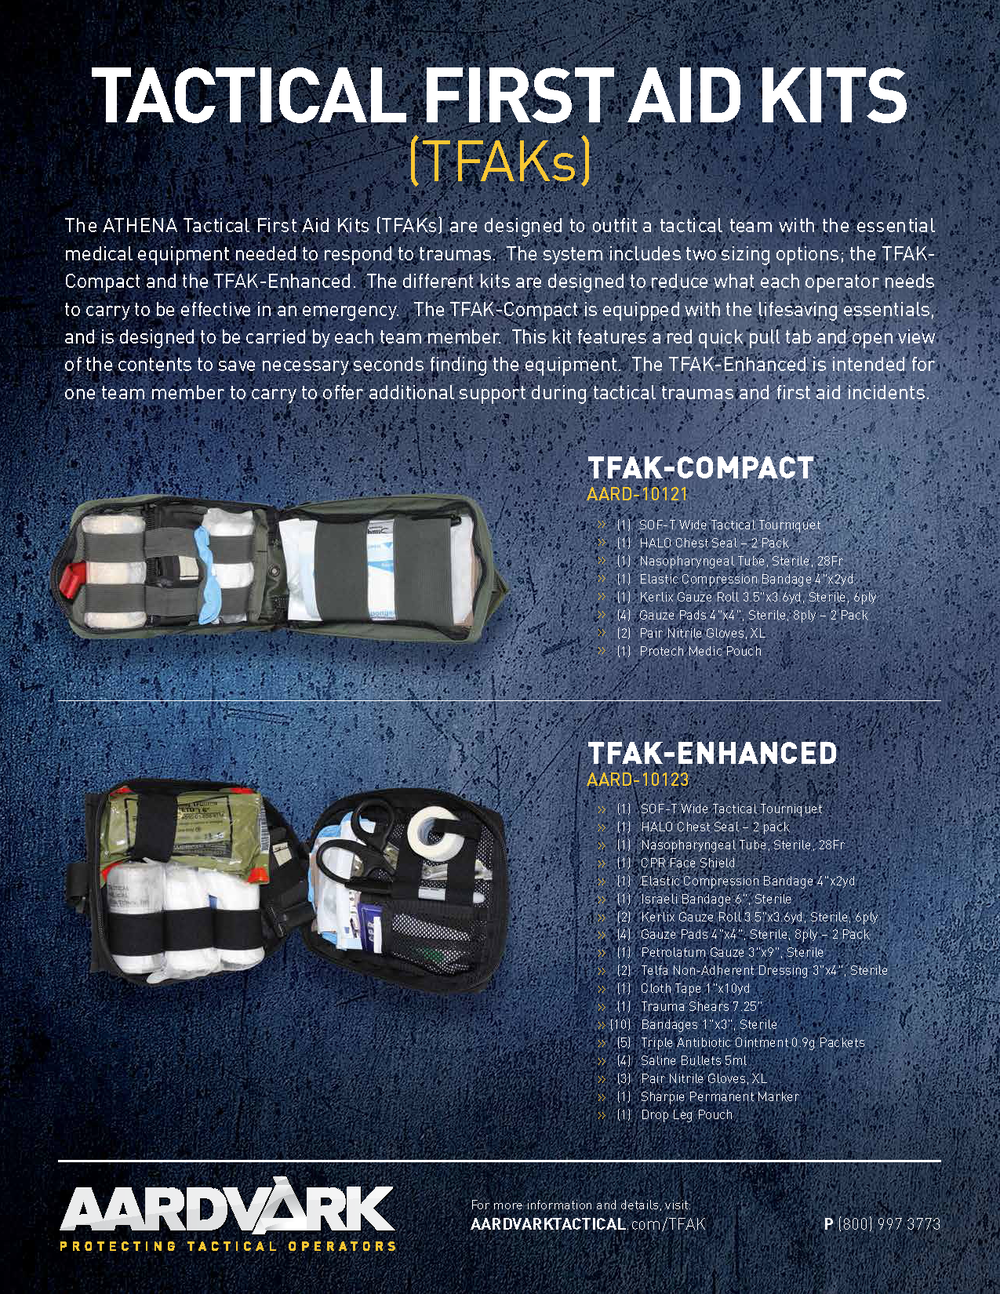 HPD uses and recommends the listed kit. You can find them at this location:   www.aardvarktactical.com